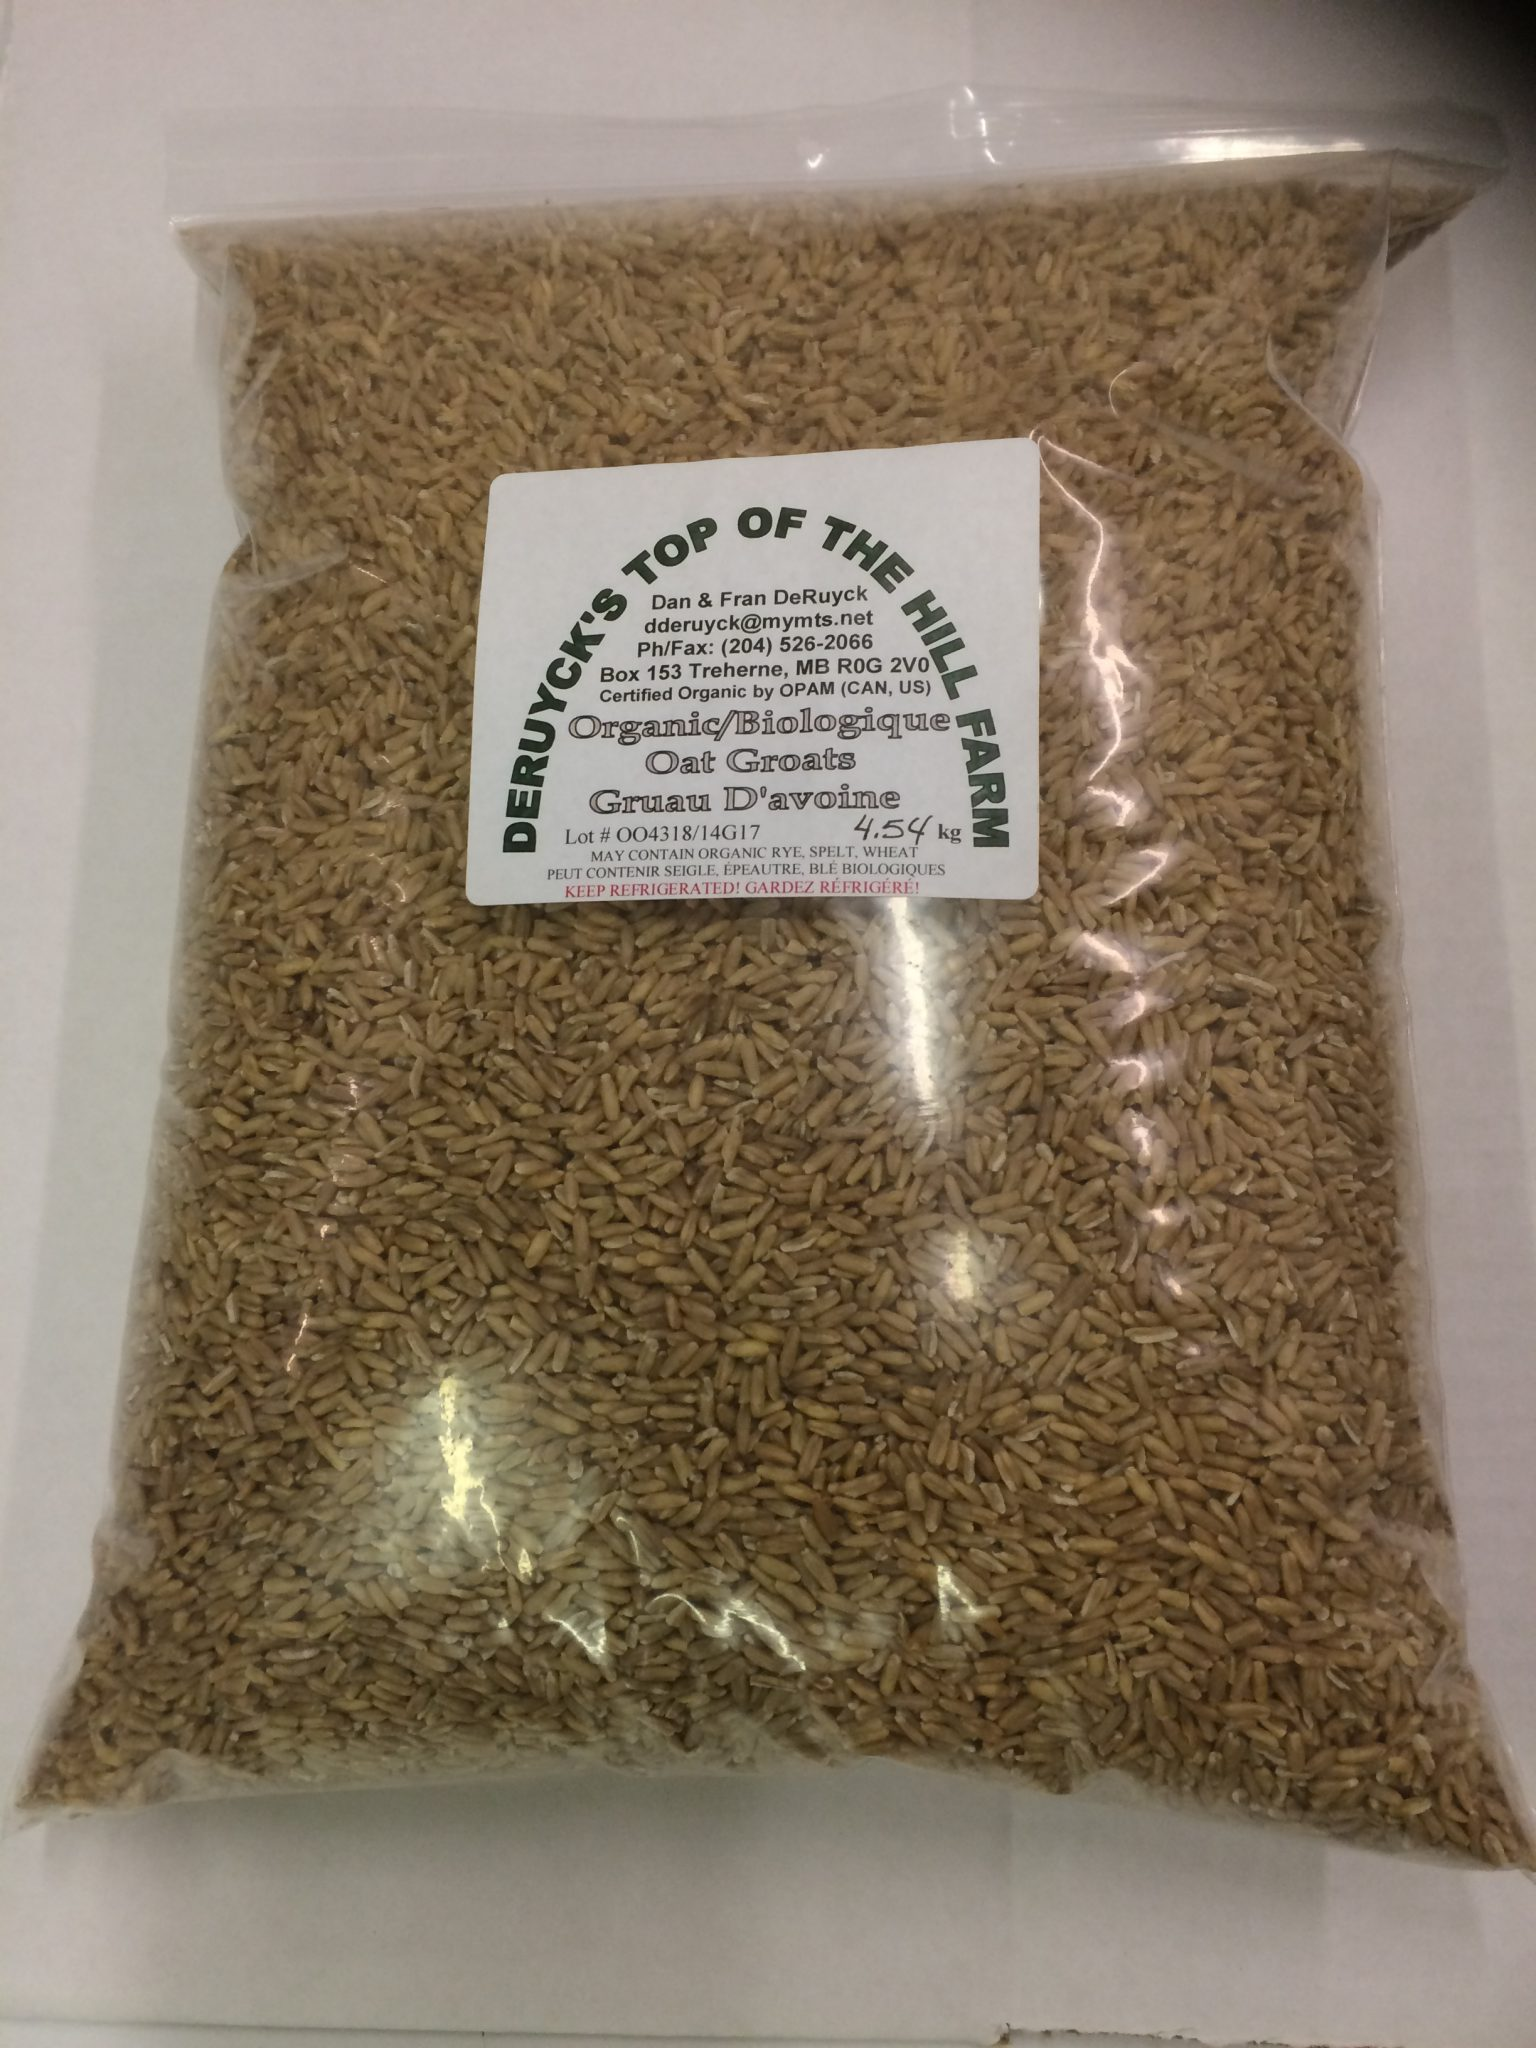 Oat Groats, Organic, LOCAL, DeRuyck's, 4 54 kg oats, berries